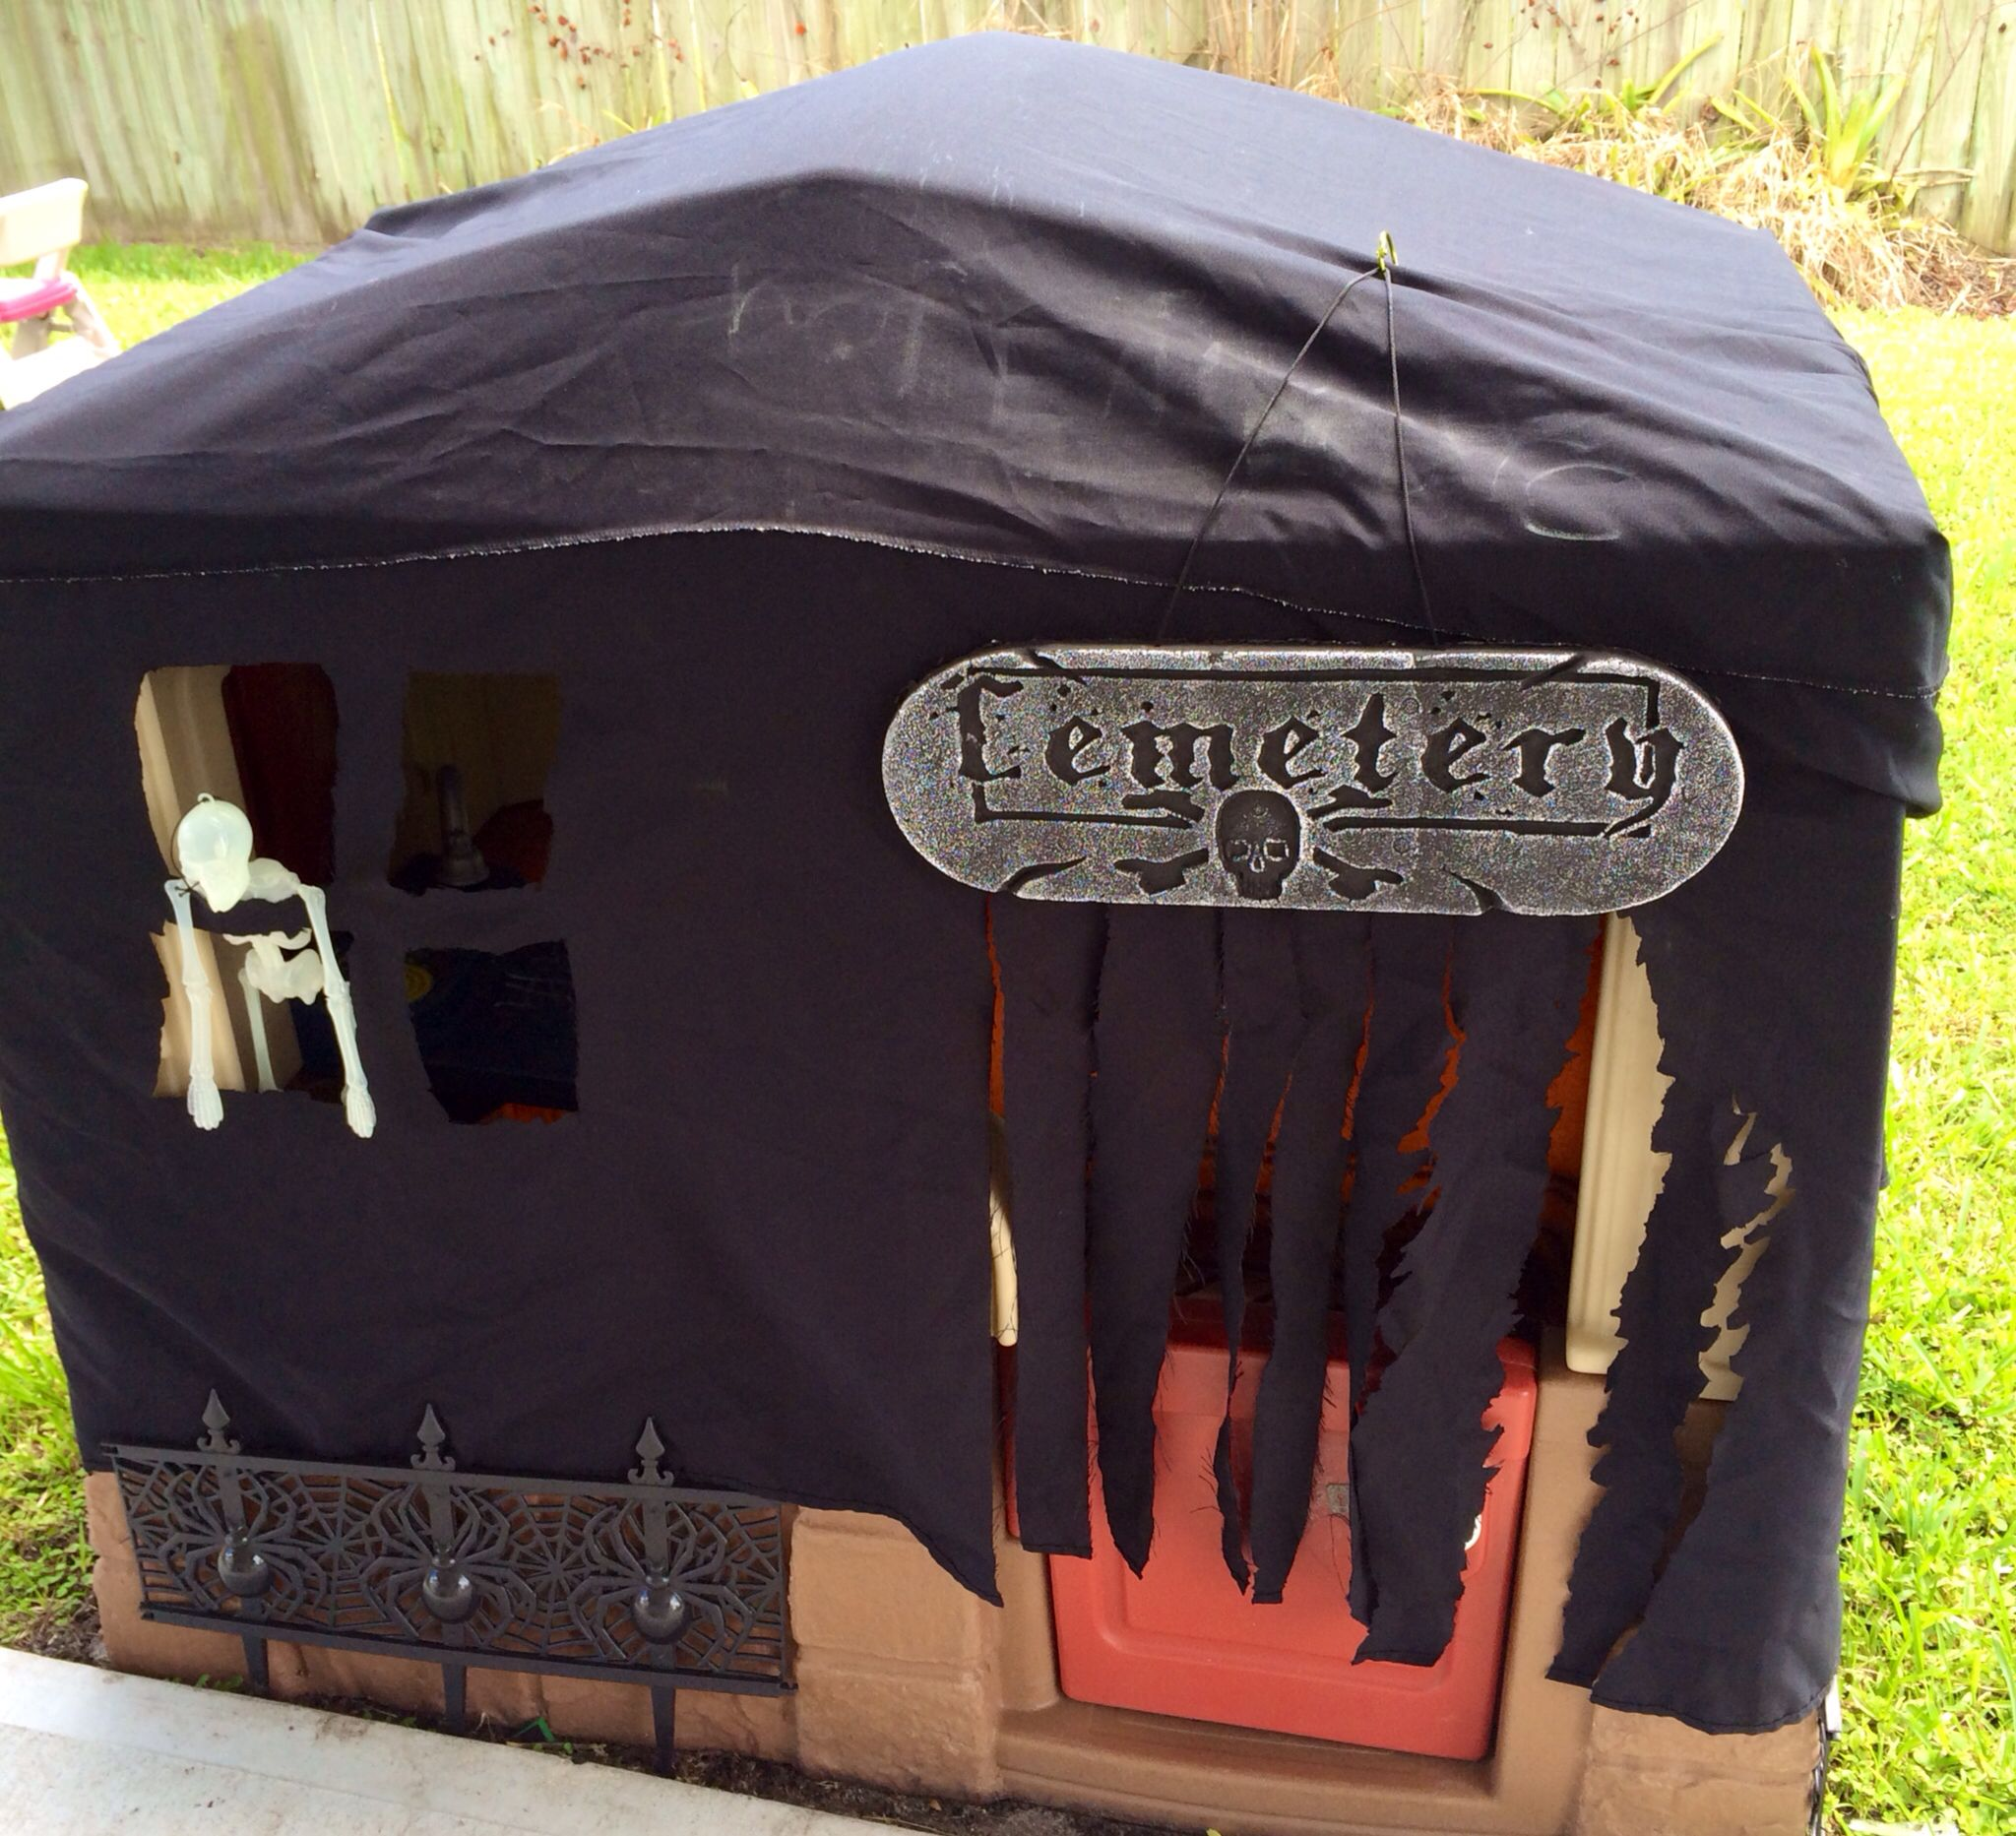 Turn A Kids Outdoor Playhouse Into A Haunted House Using A Black